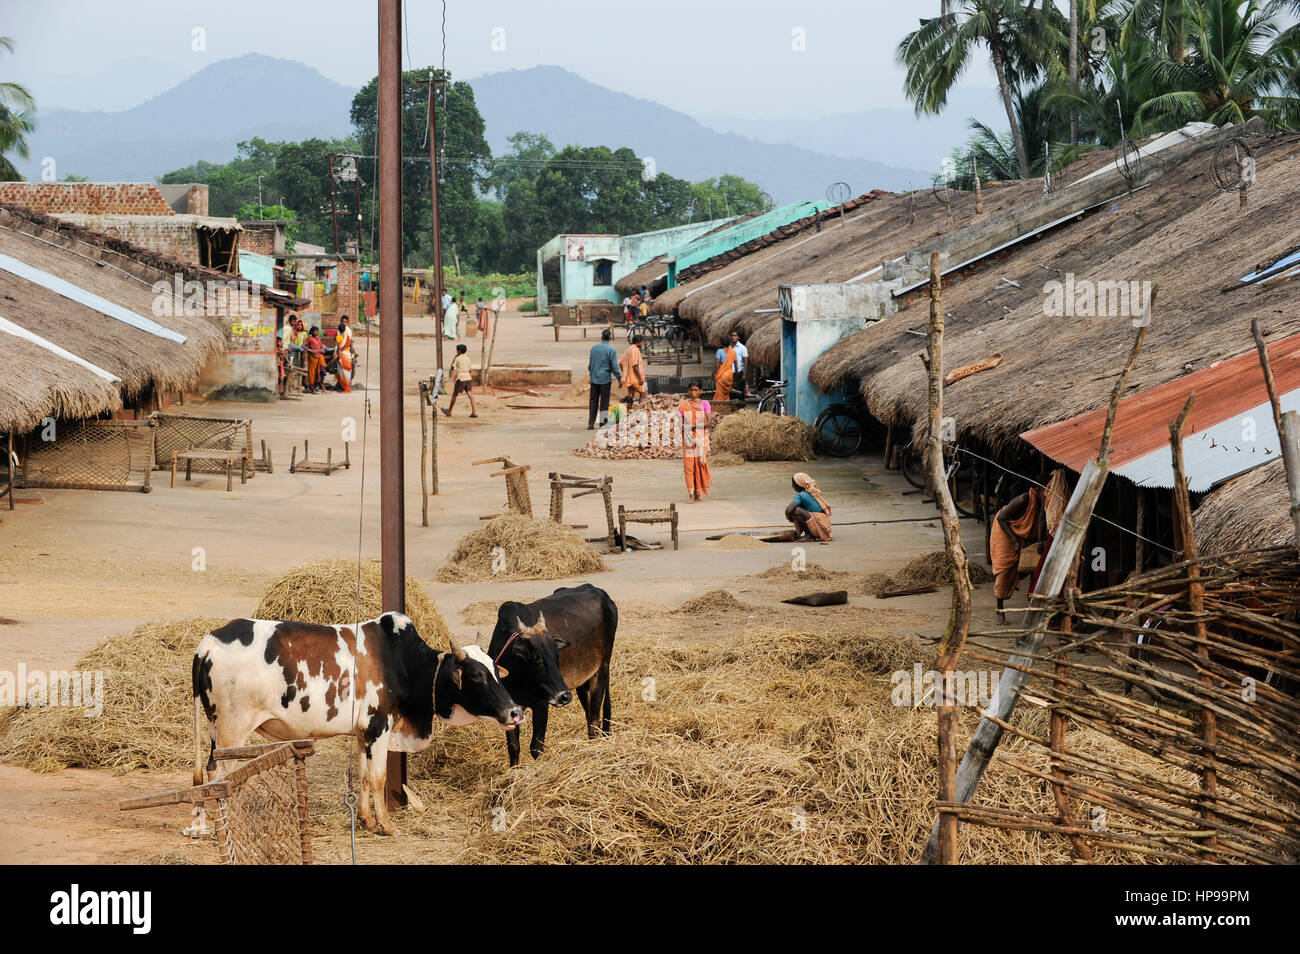 Rural Orissa Stock Photos & Rural Orissa Stock Images - Page 3 - Alamy